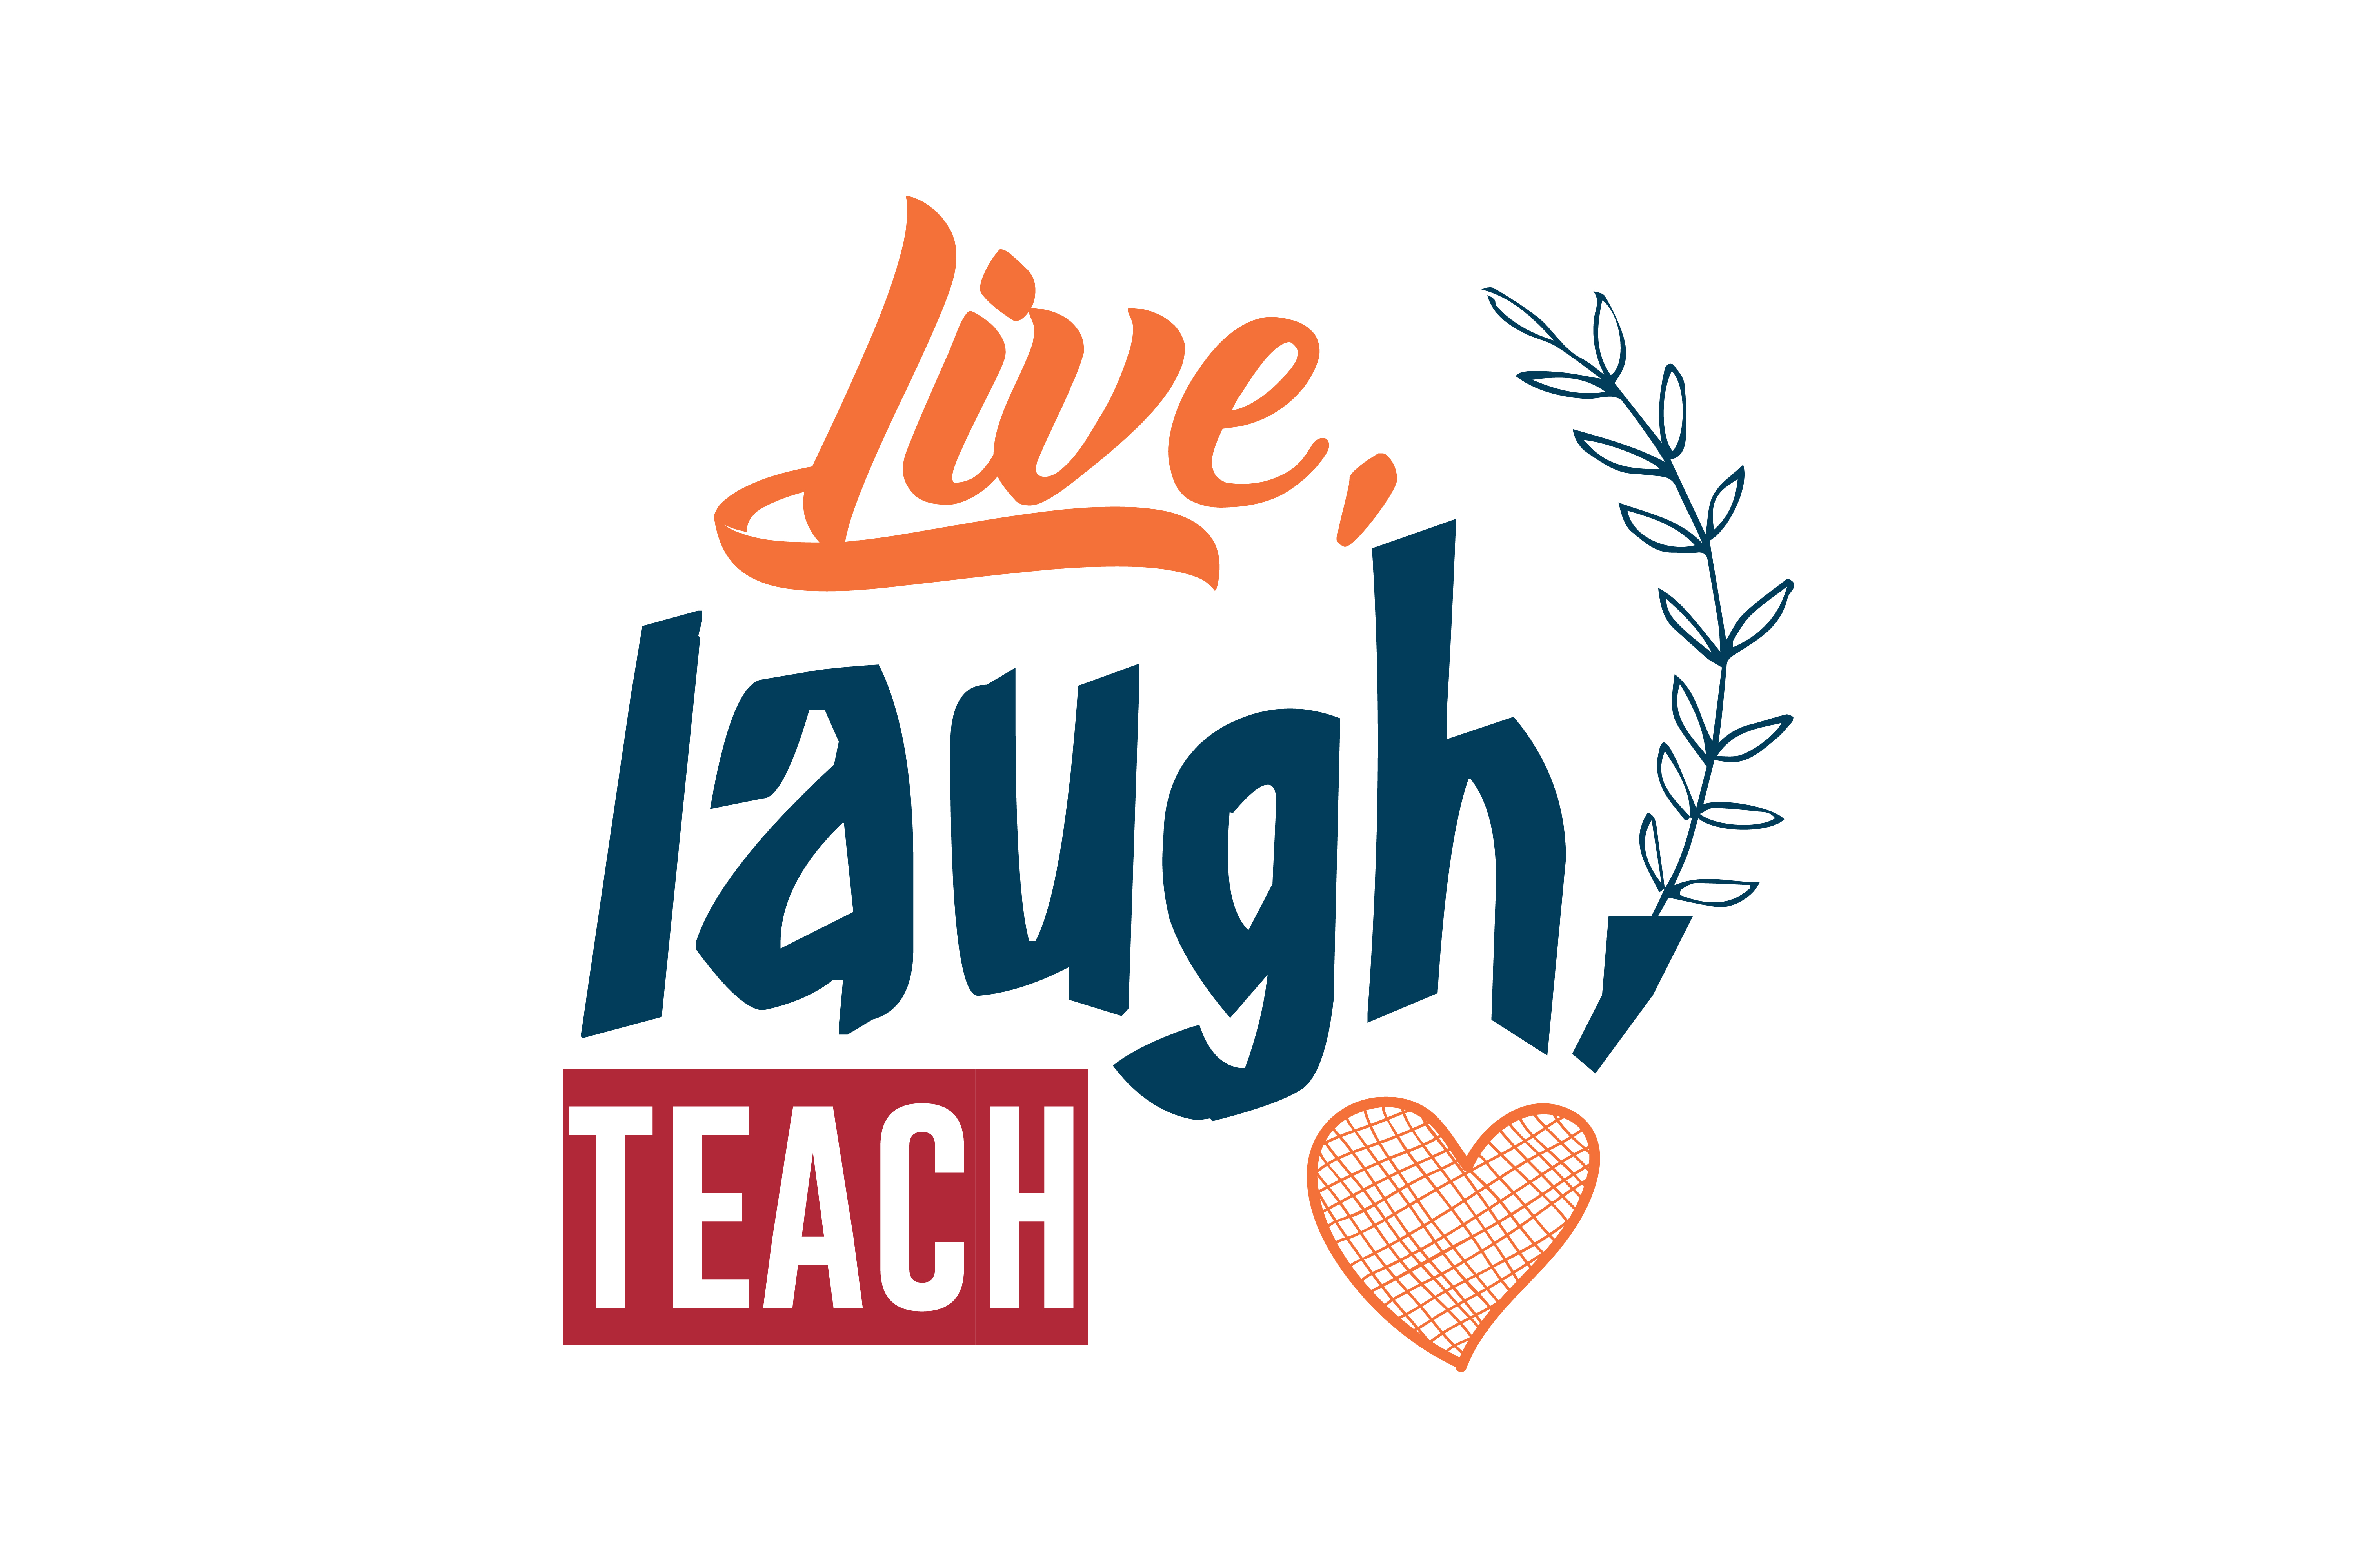 Download Free Live Laugh Teach Quote Svg Cut Graphic By Thelucky Creative for Cricut Explore, Silhouette and other cutting machines.